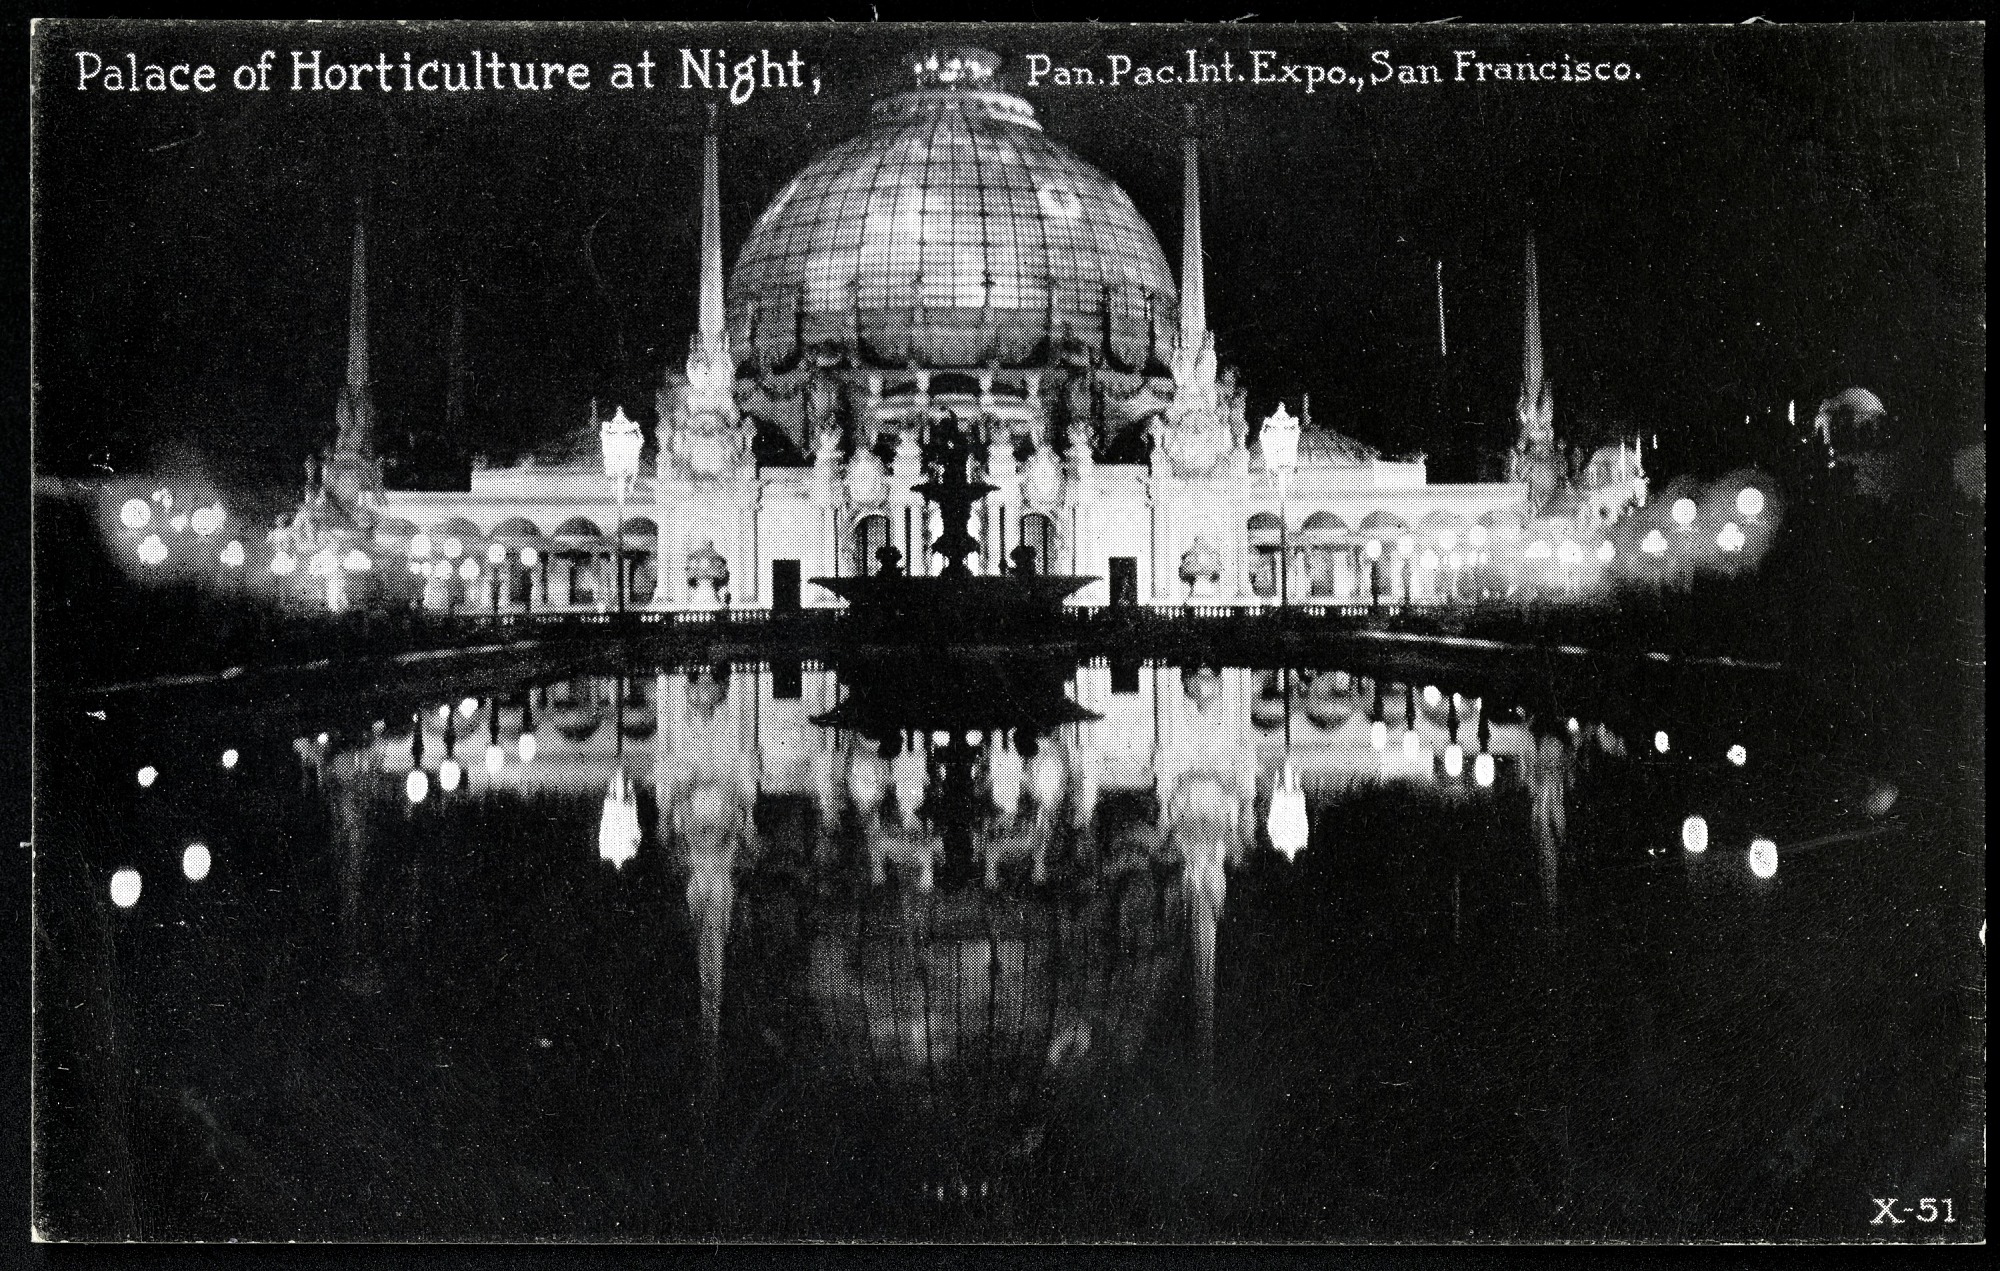 Palace of Horticulture Postcard from the Panama-Pacific Exposition